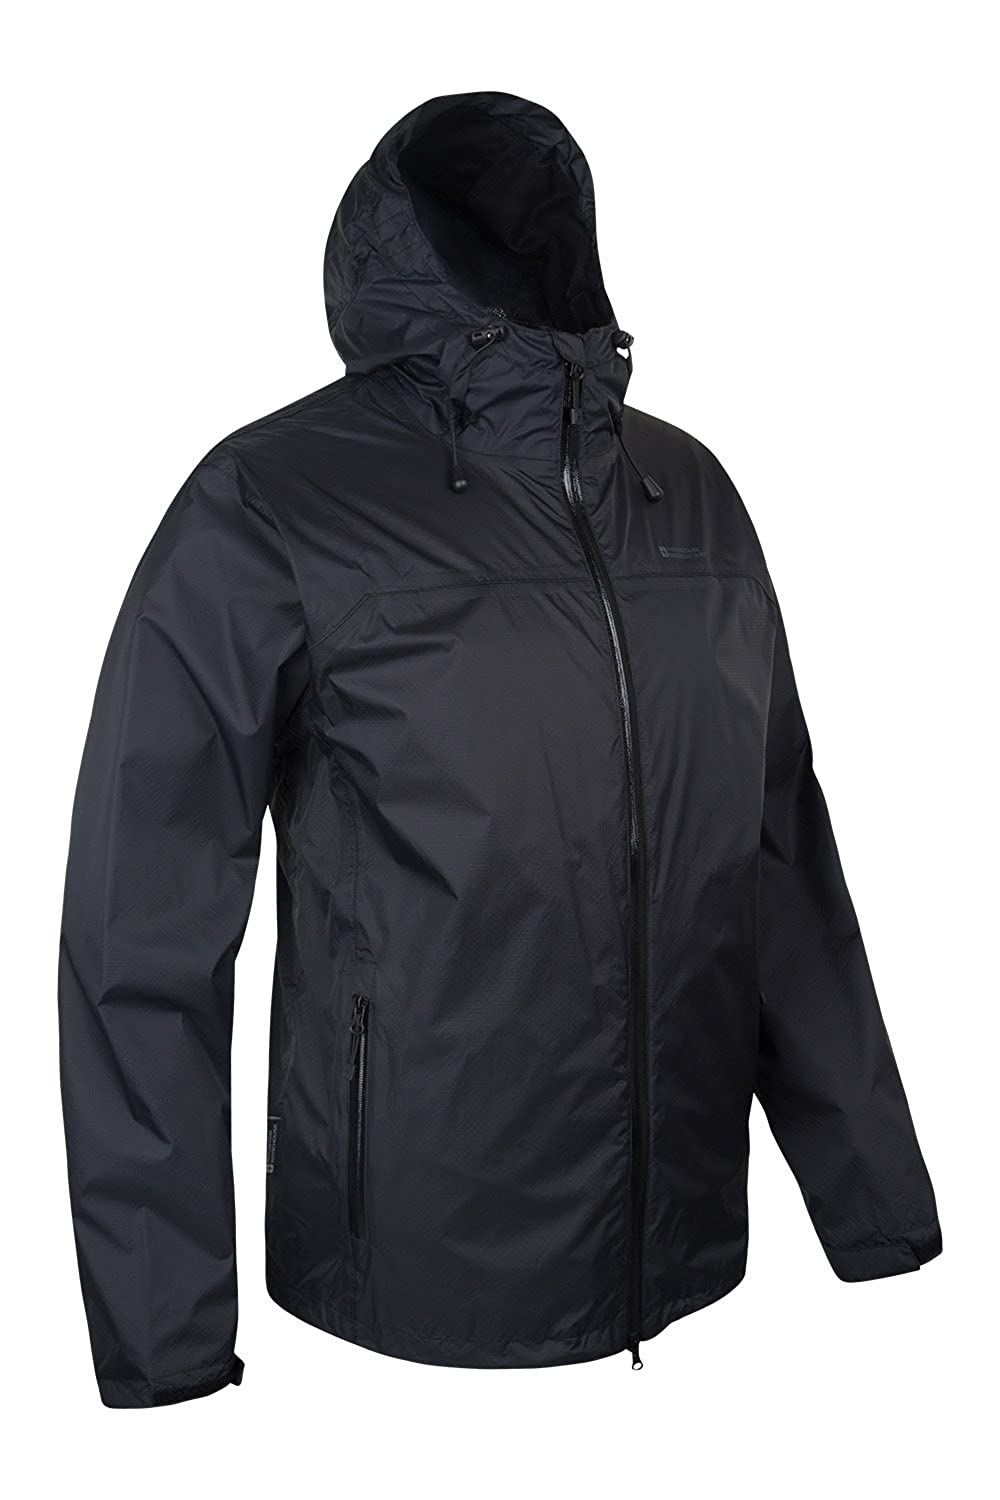 Mountain Warehouse Hail Mens Wasserdichte Herrenjacke günstig